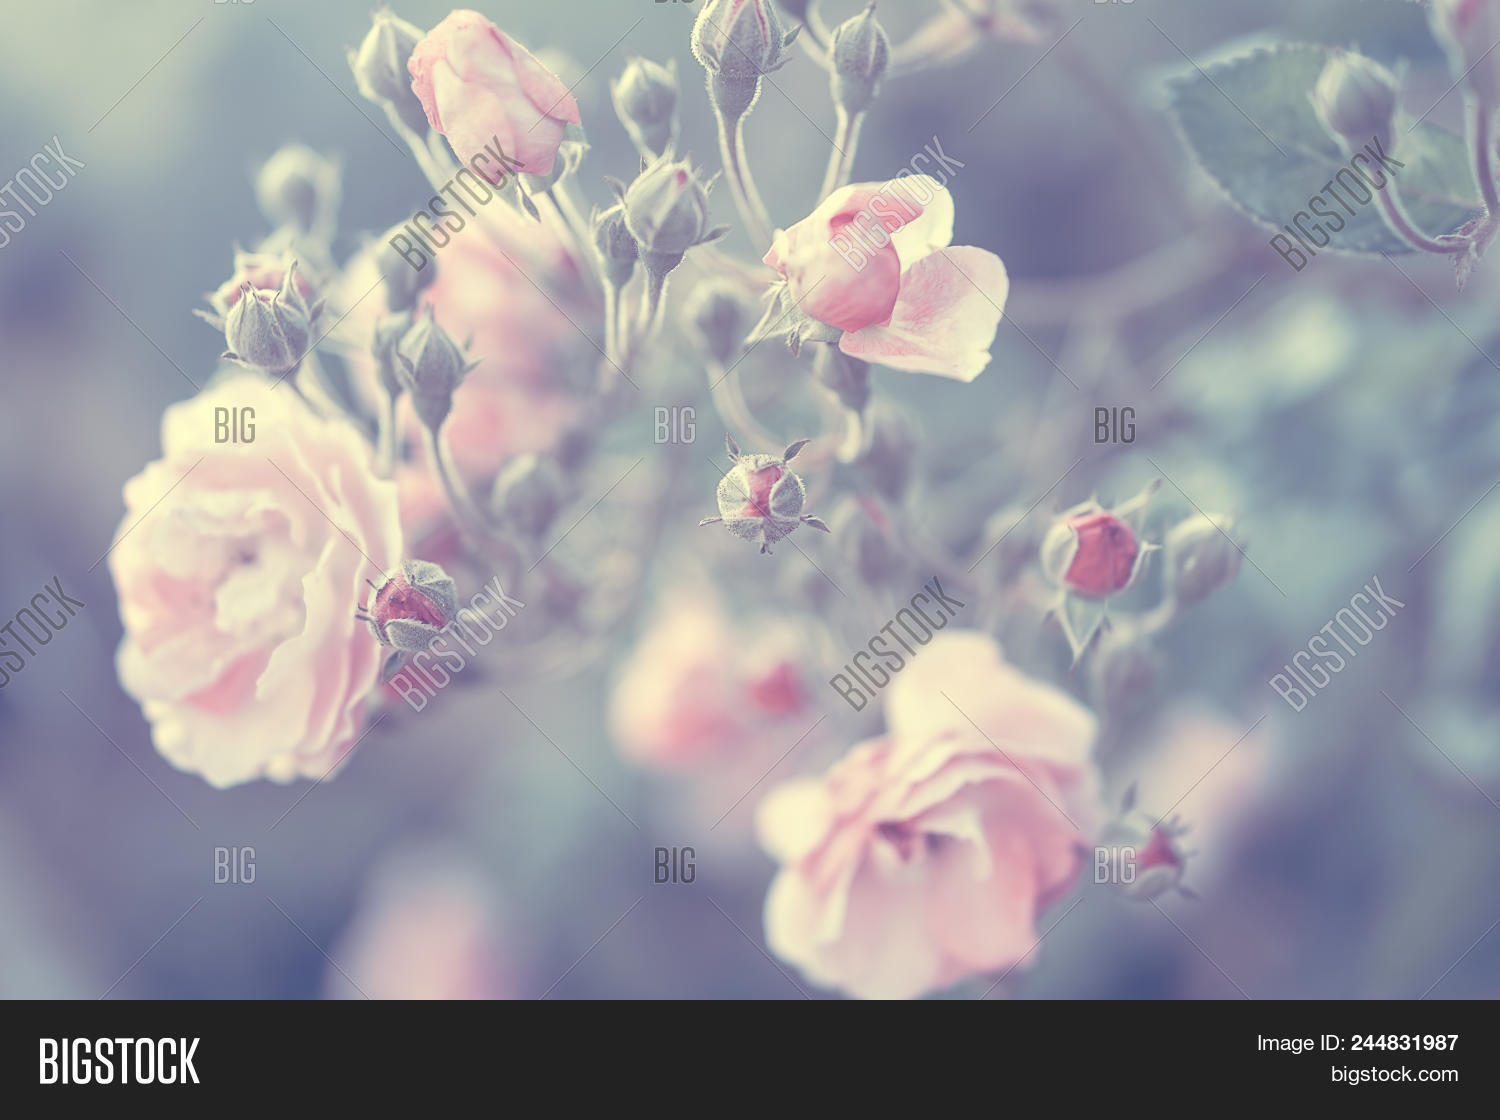 Pastel Rose Background Image Photo Free Trial Bigstock